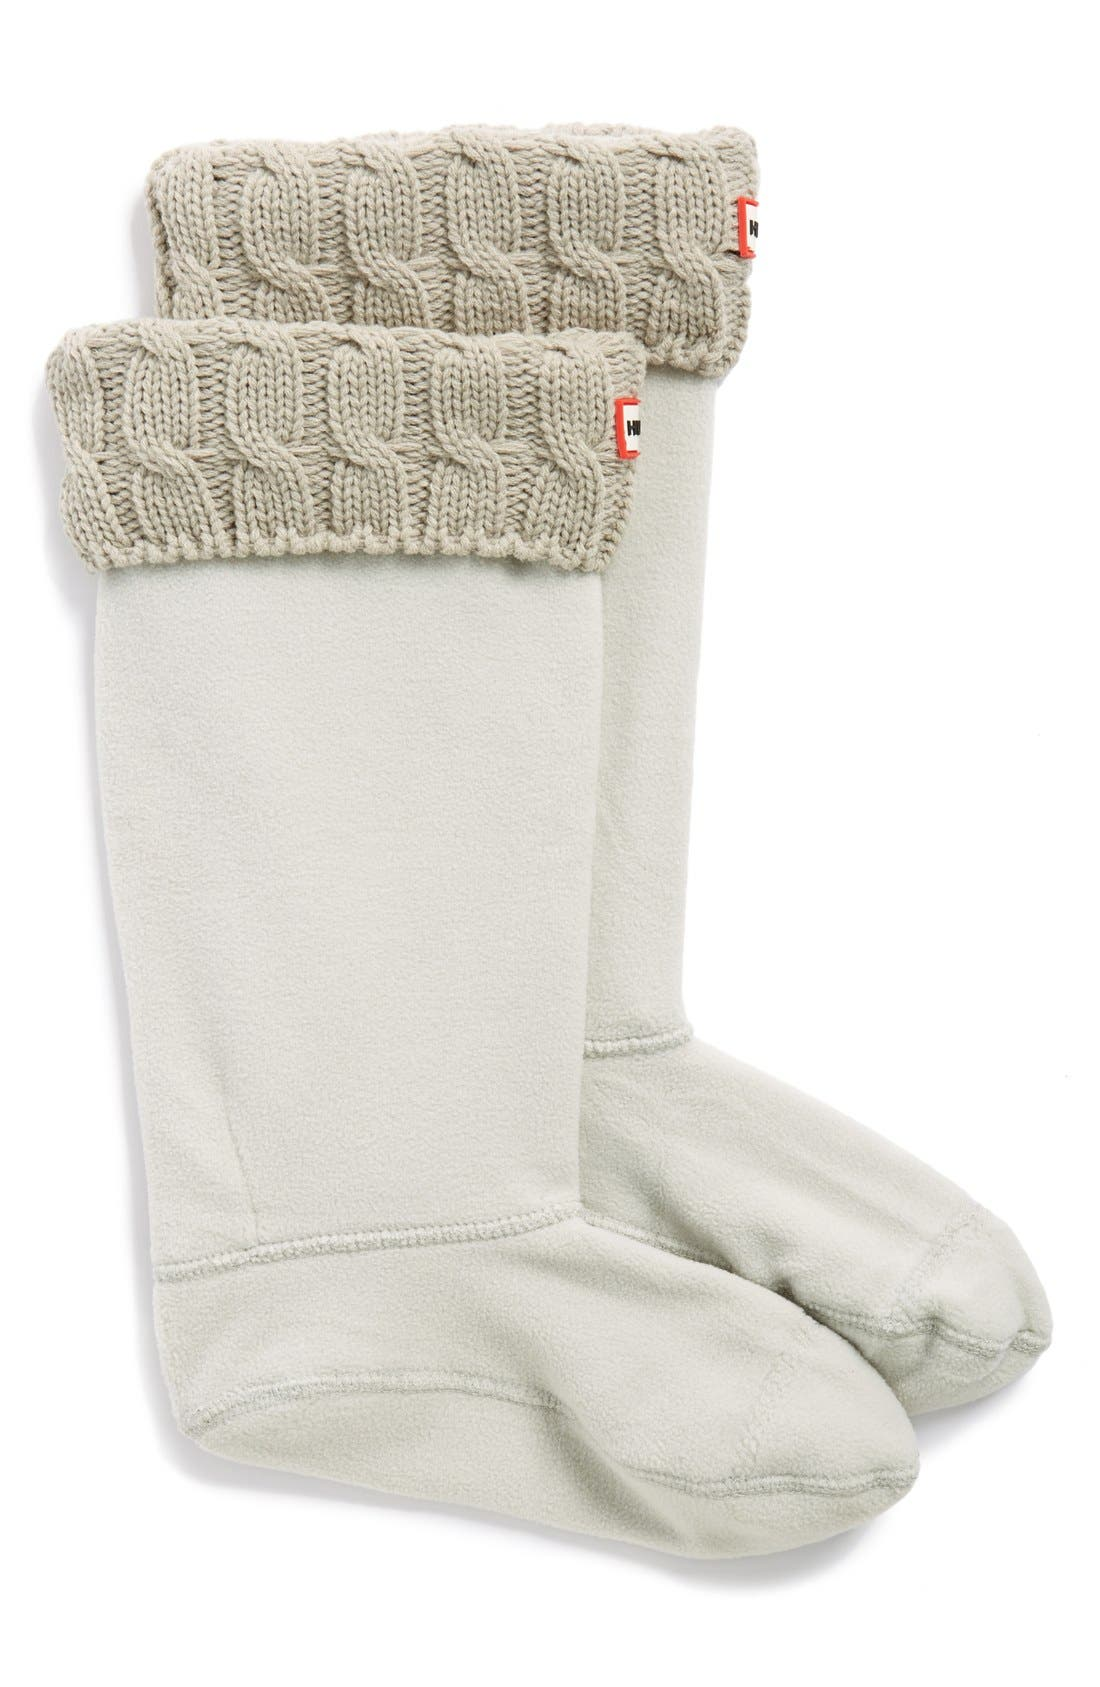 HUNTER Original Tall Cable Knit Cuff Welly Boot